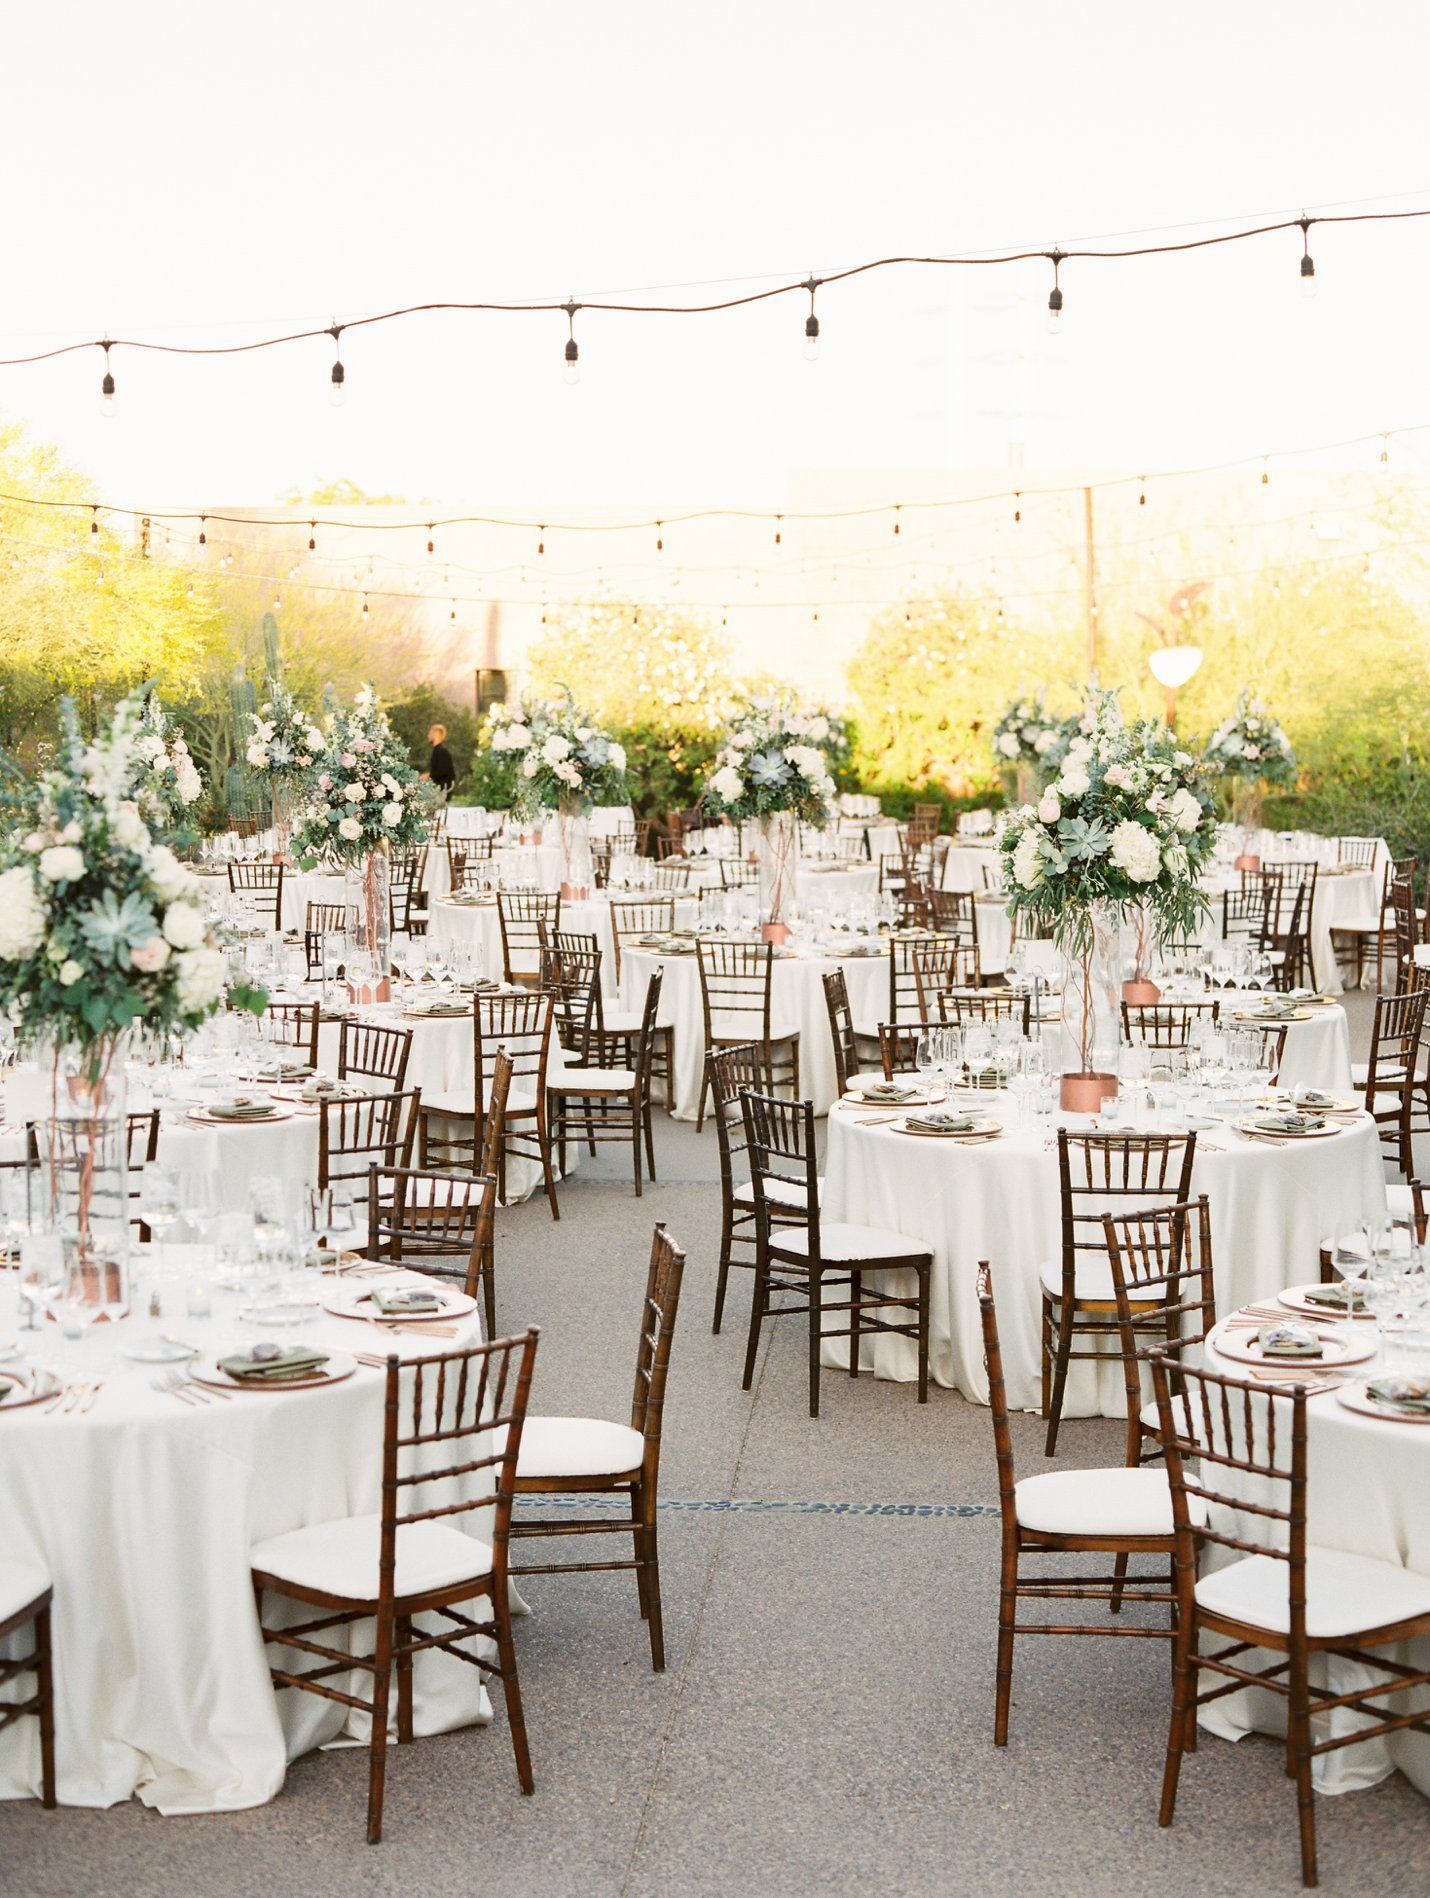 Desert Botanical Garden Wedding - Rachel Solomon Photography #botanicgarden